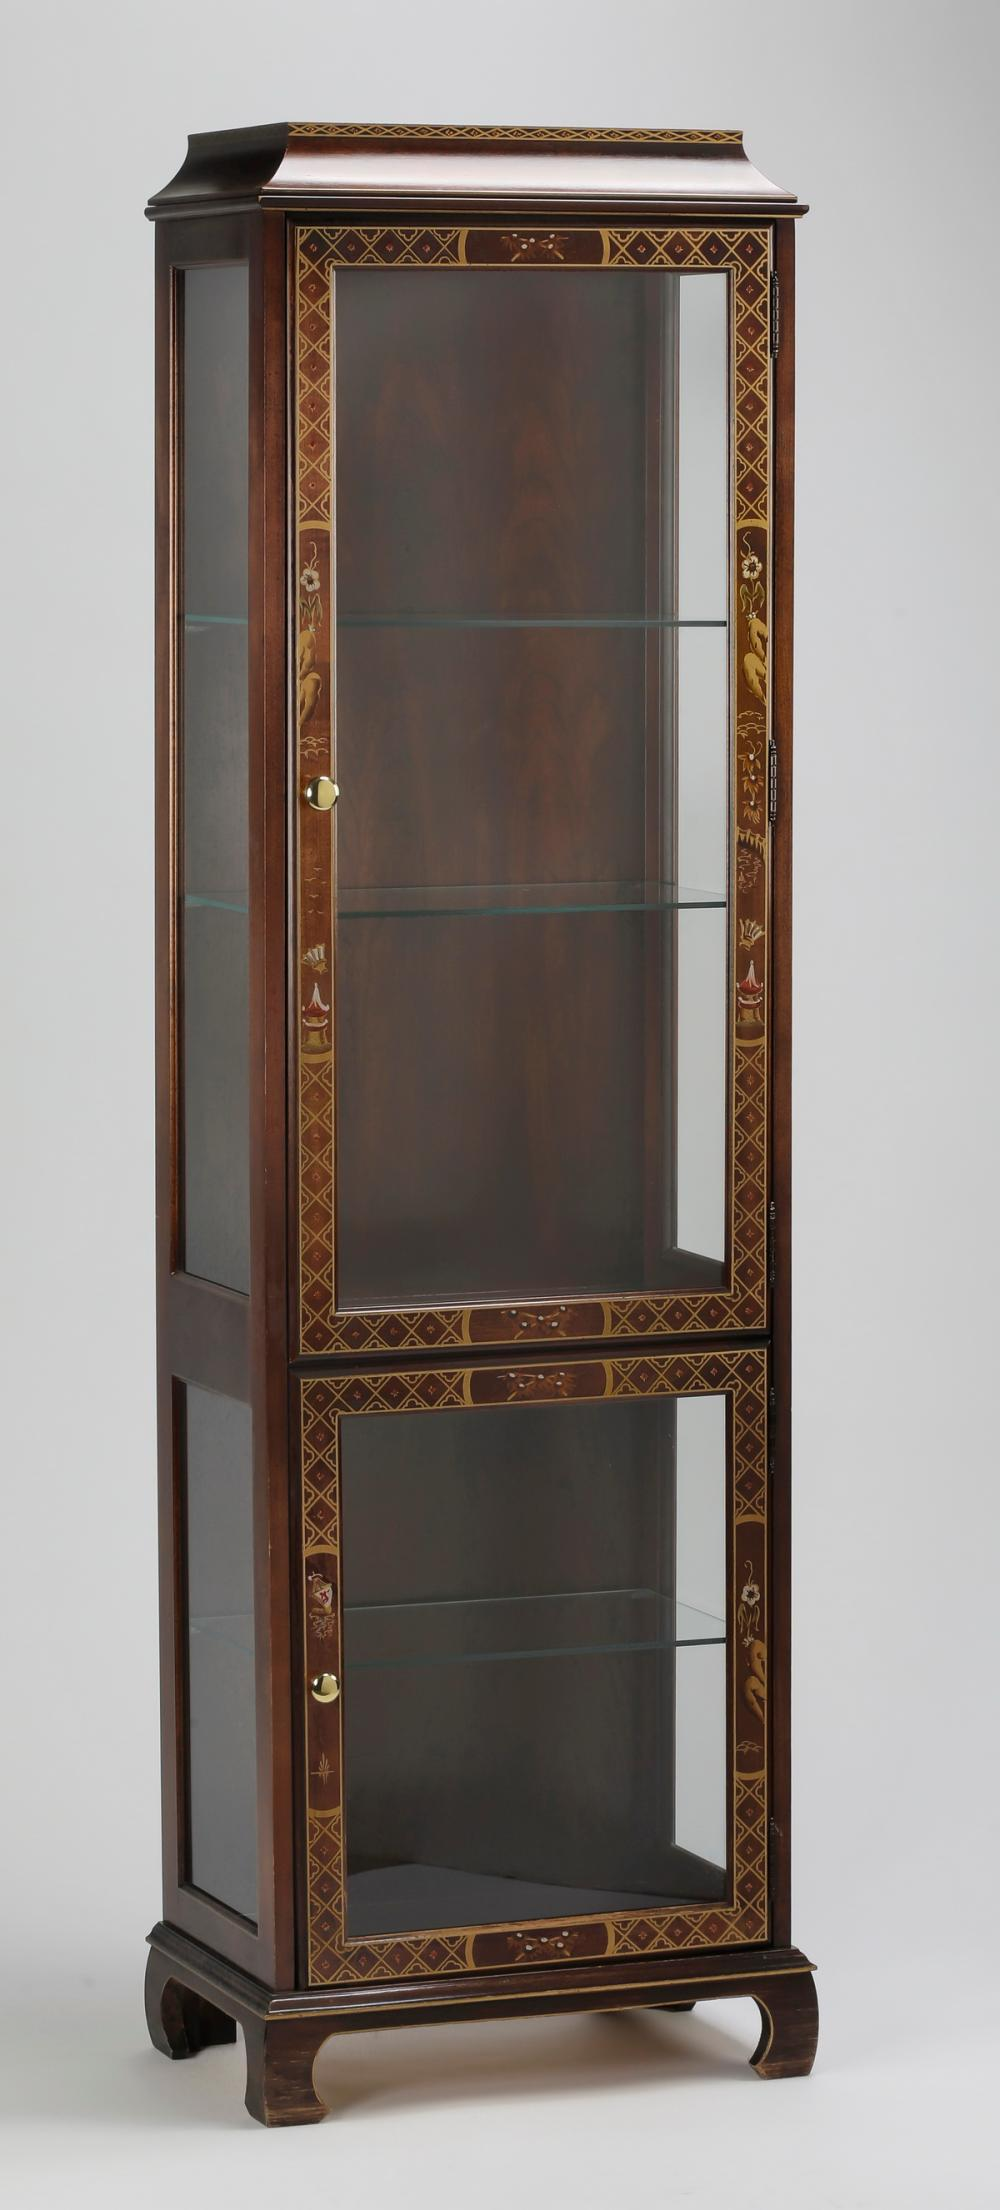 "Chinoiserie inspired two-door display cabinet, 71""h"